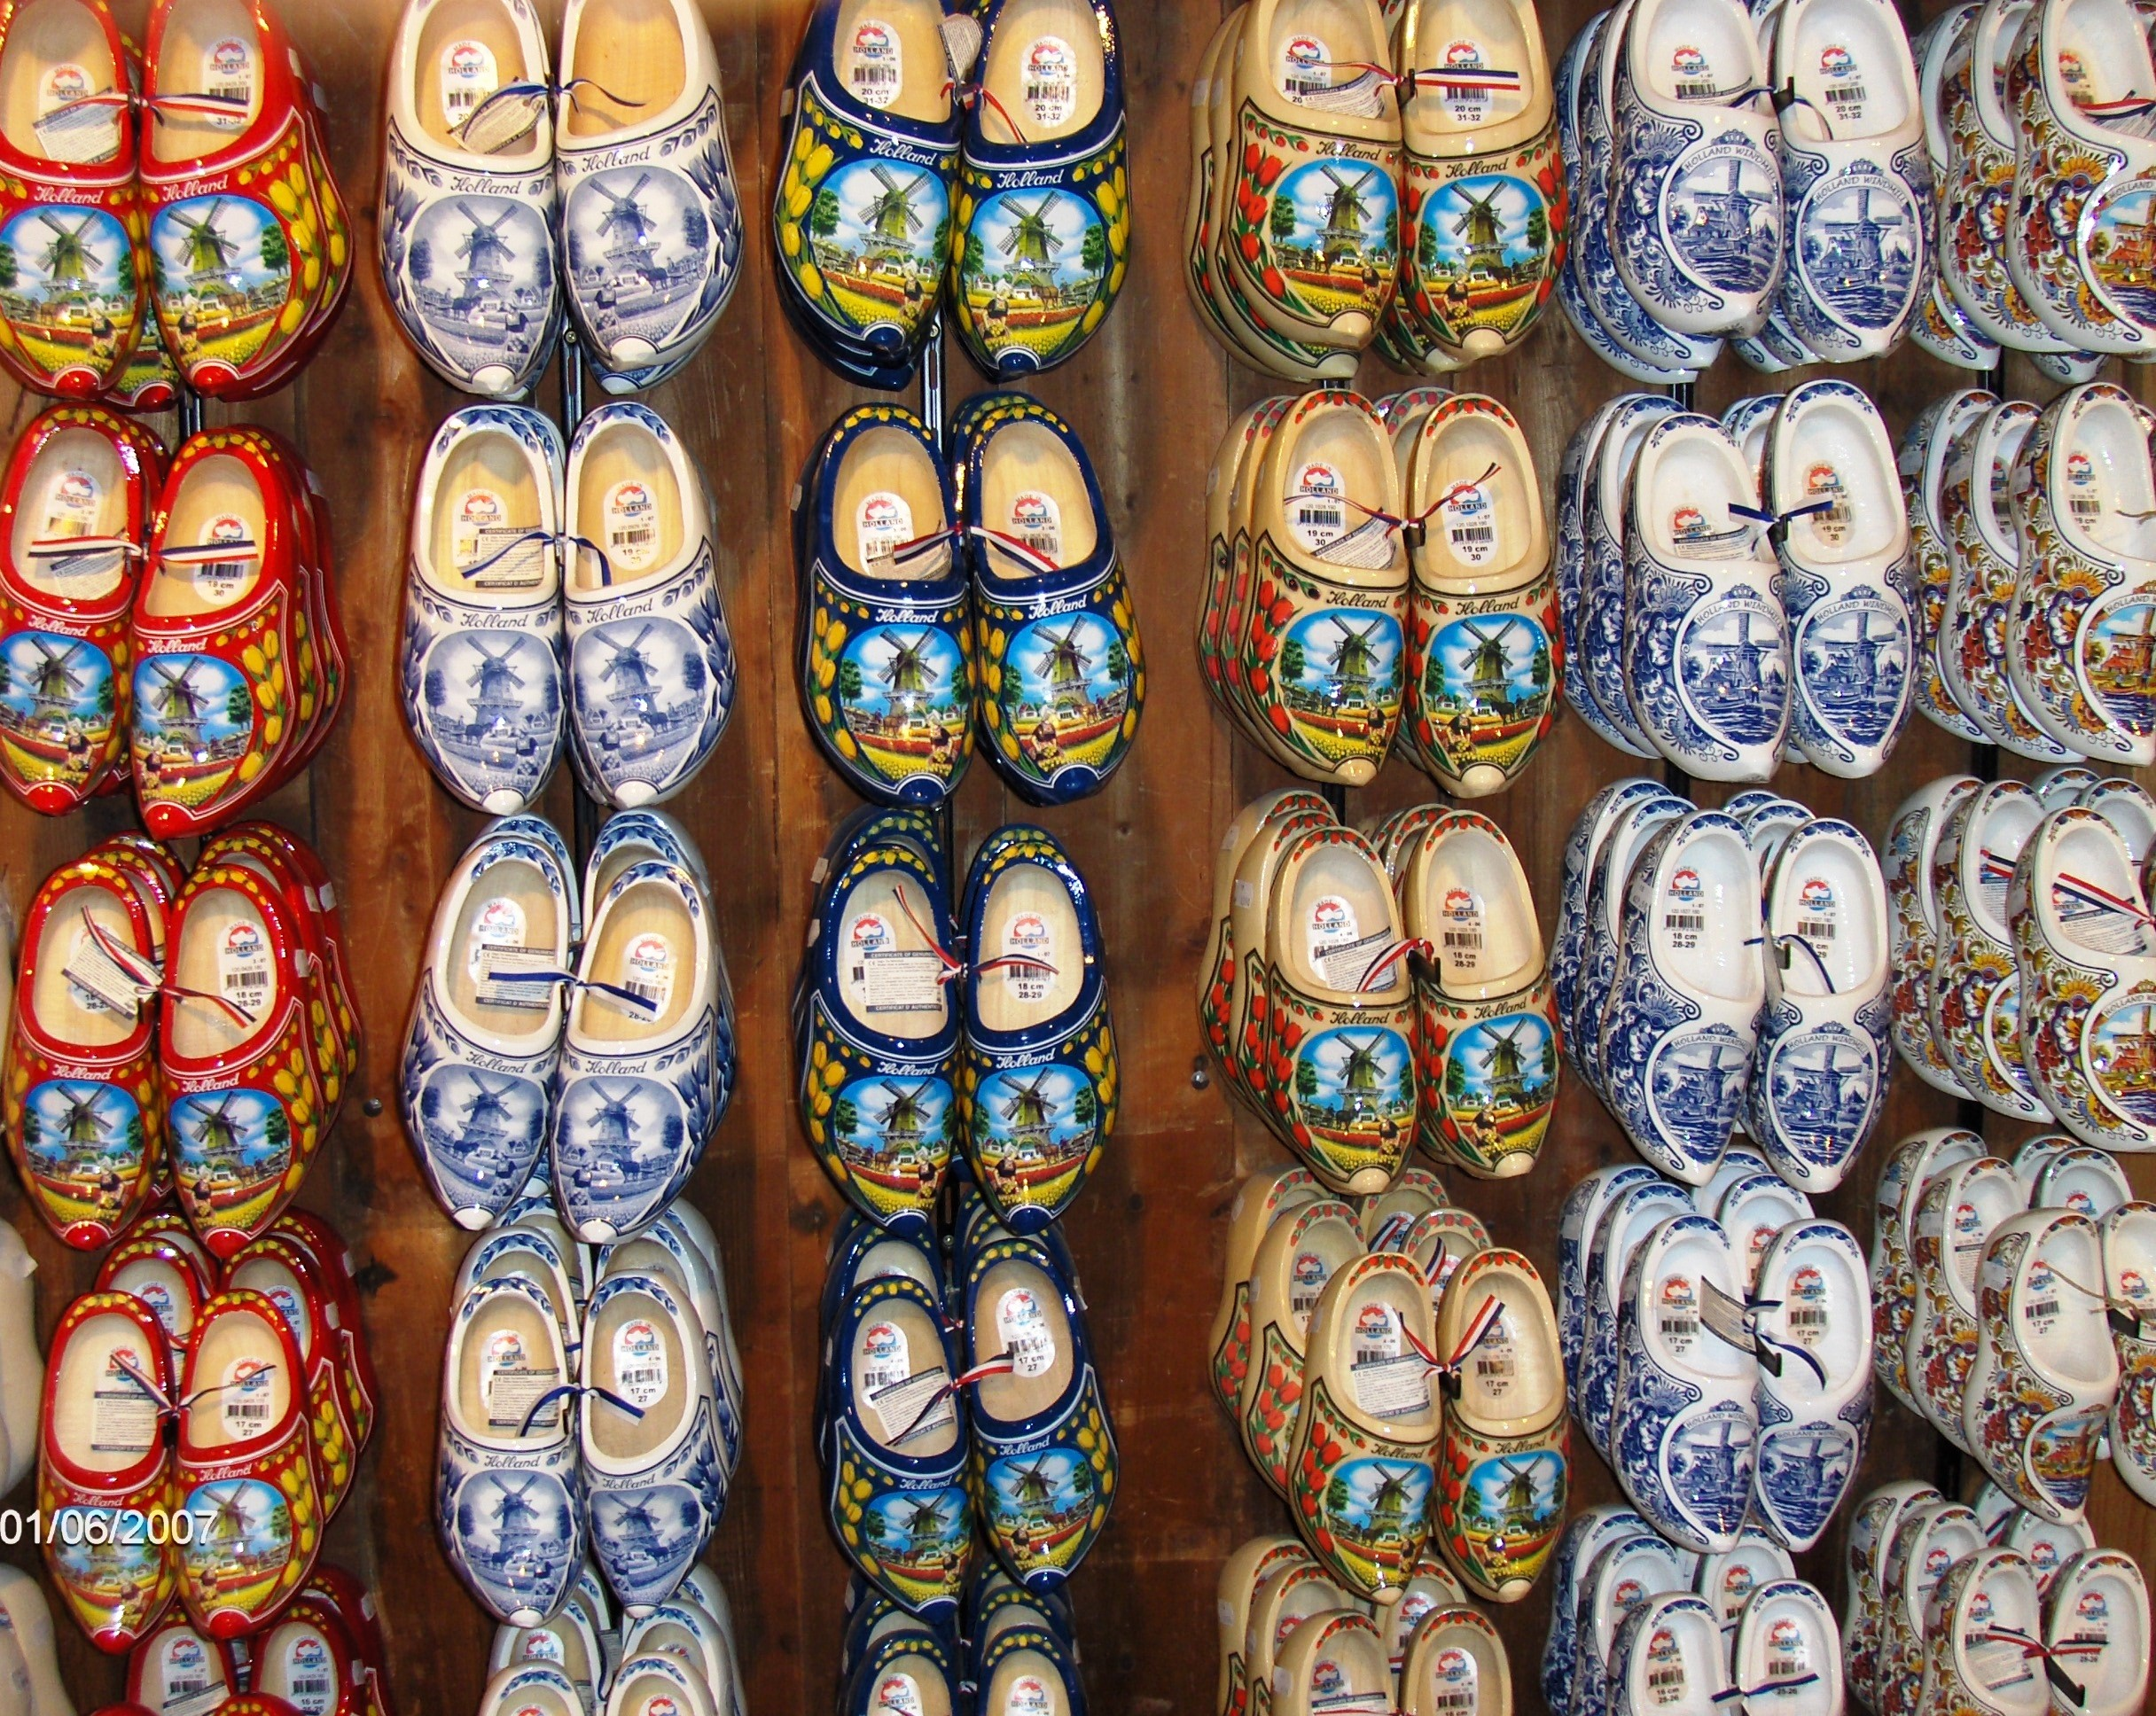 Clogs in every size and color